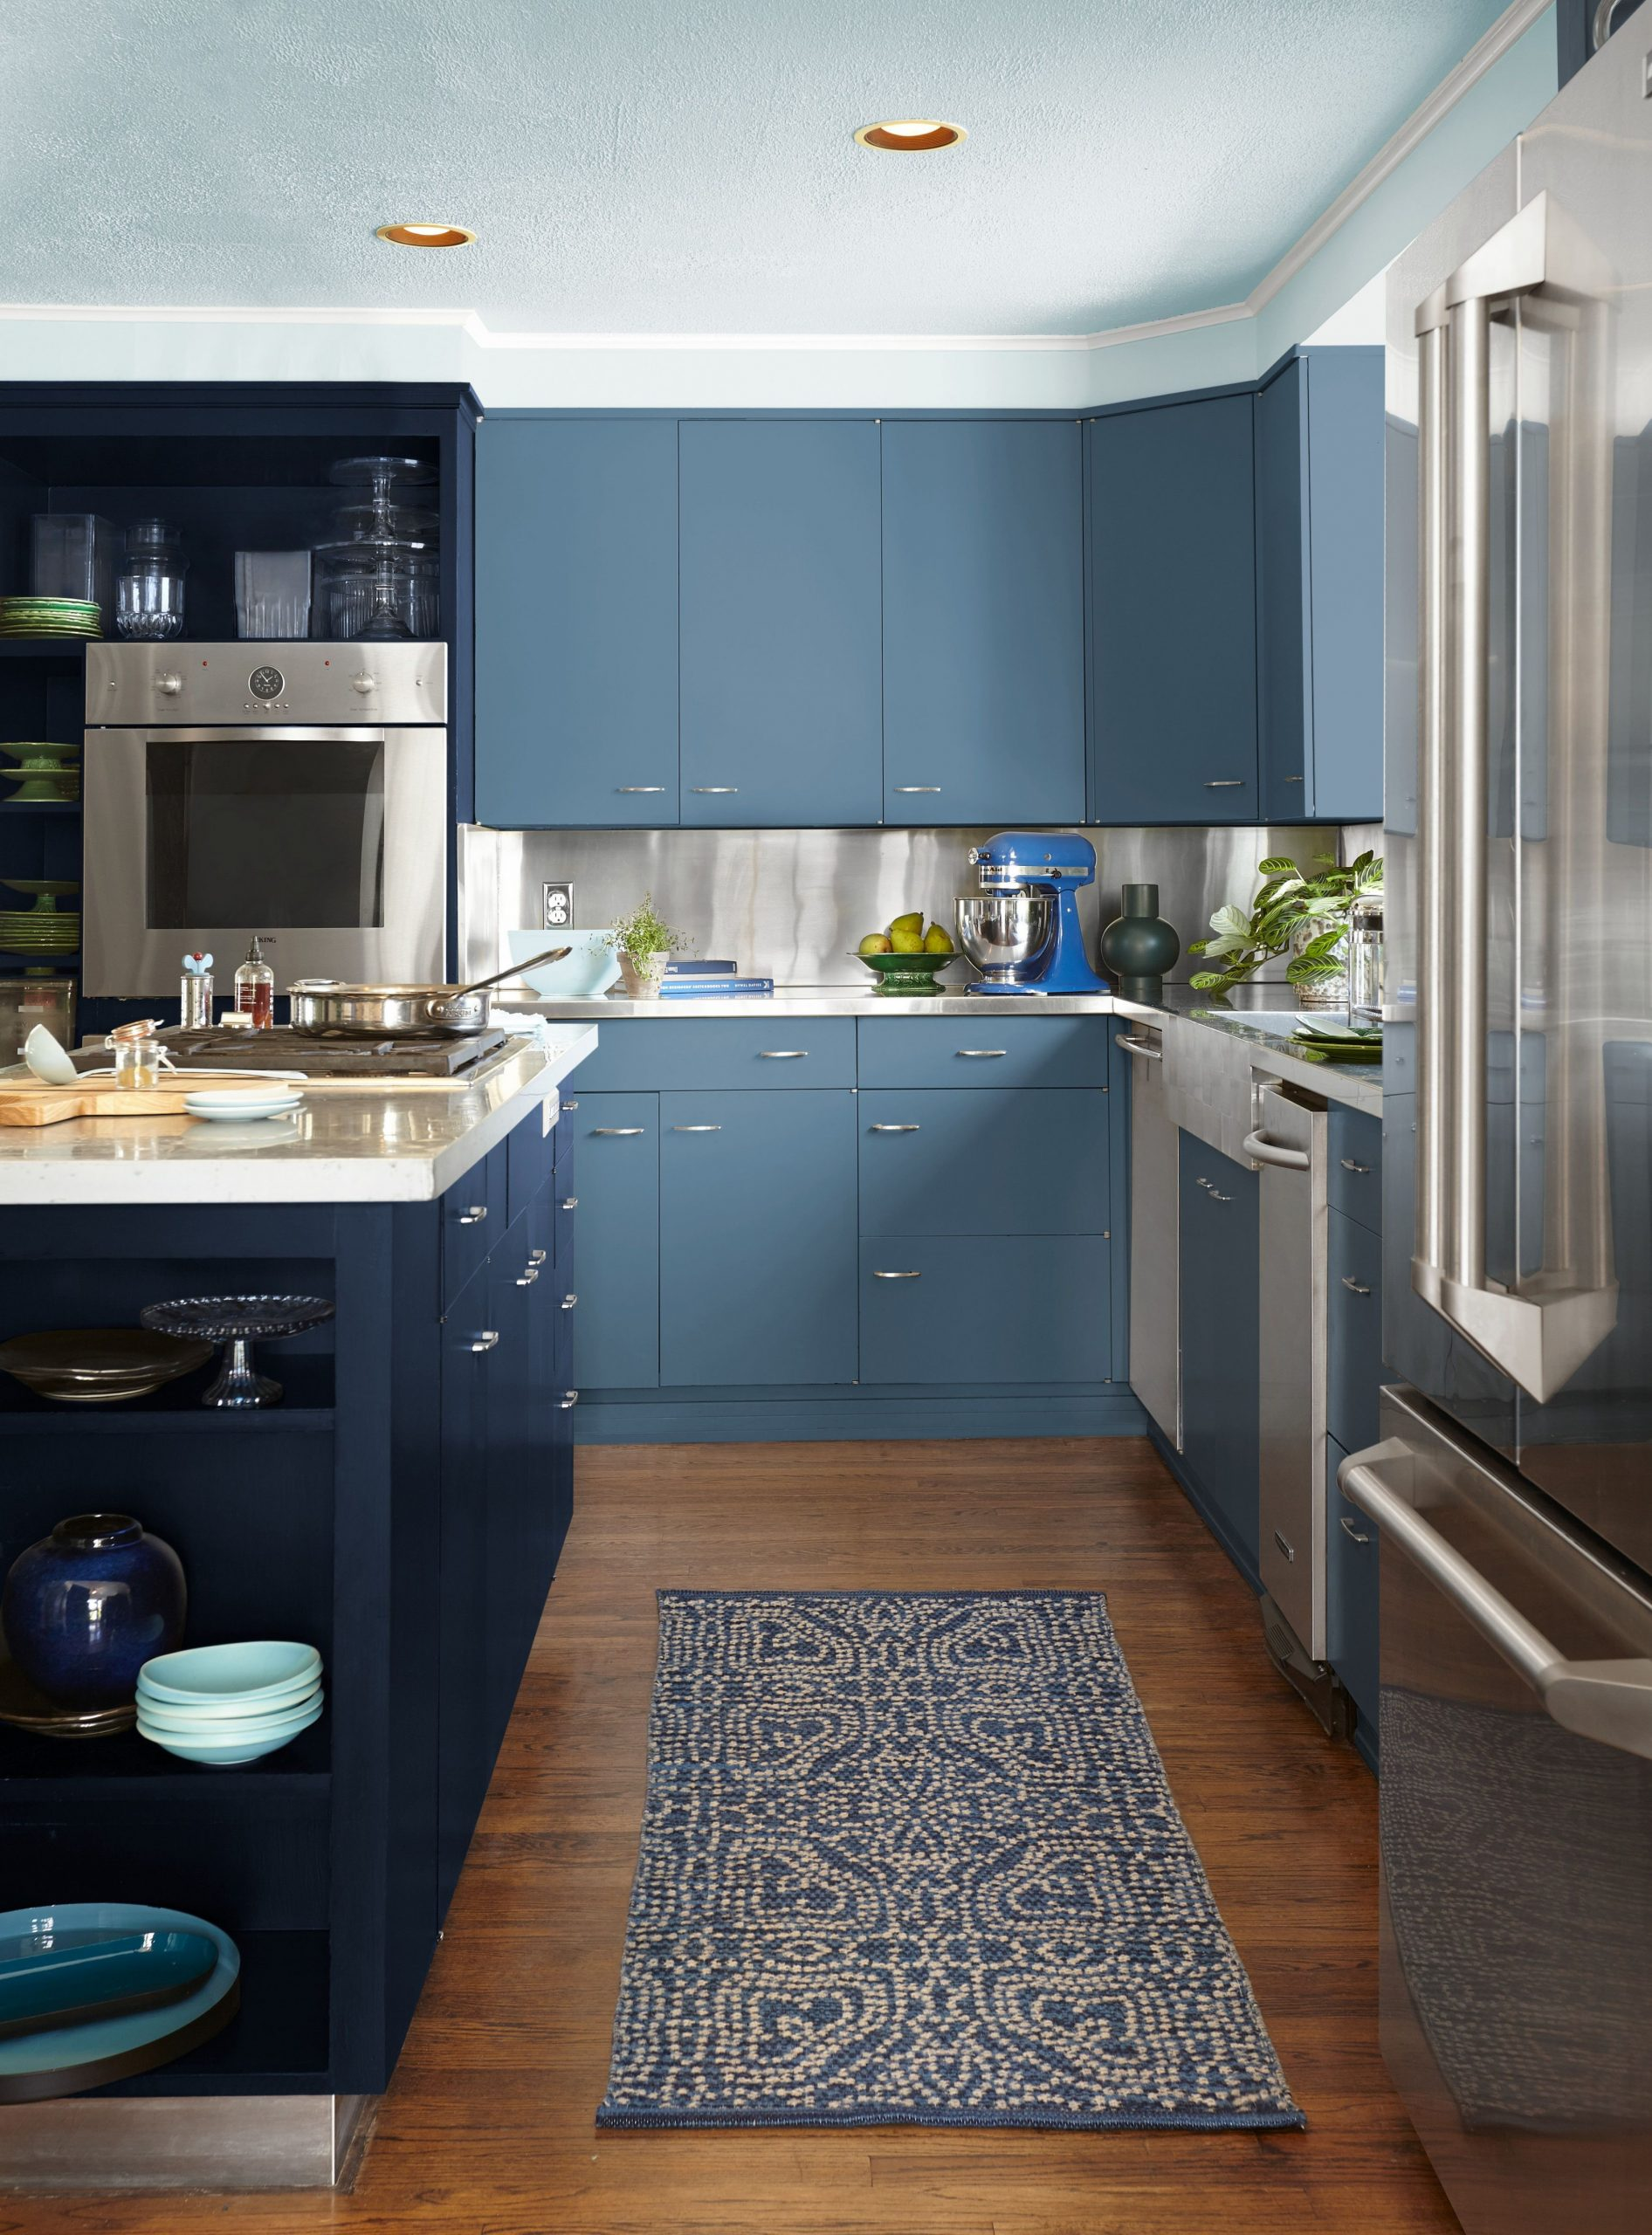 Satin vs Semi Gloss - Satin and Semi-Gloss Paint Differences - What Paint Sheen To Use On Kitchen Cabinets